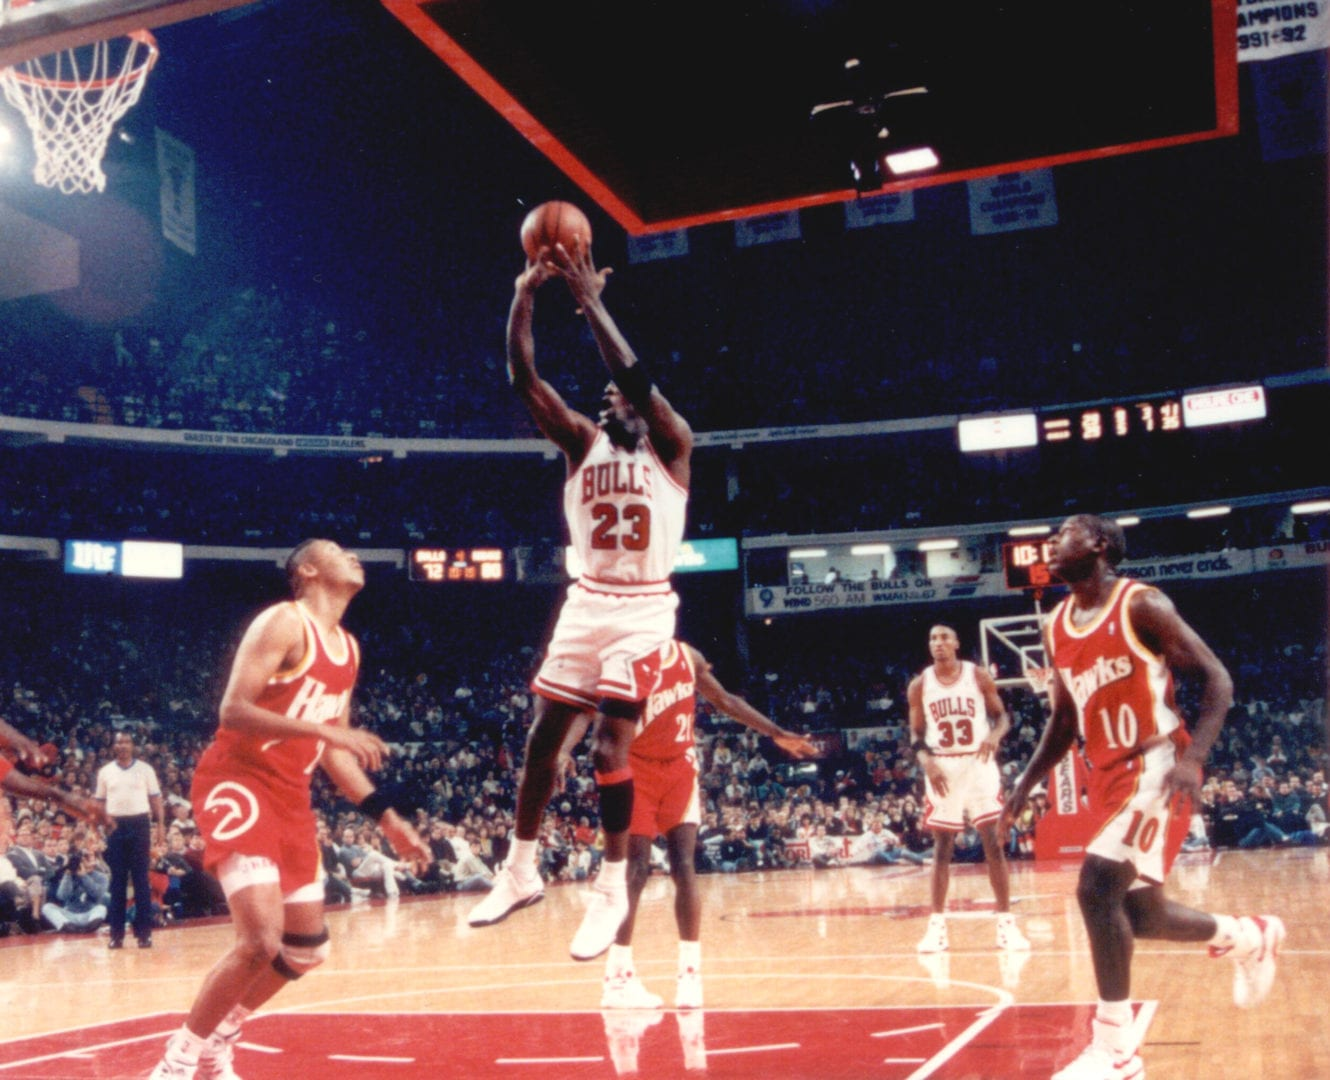 A late game jump shot by MJ